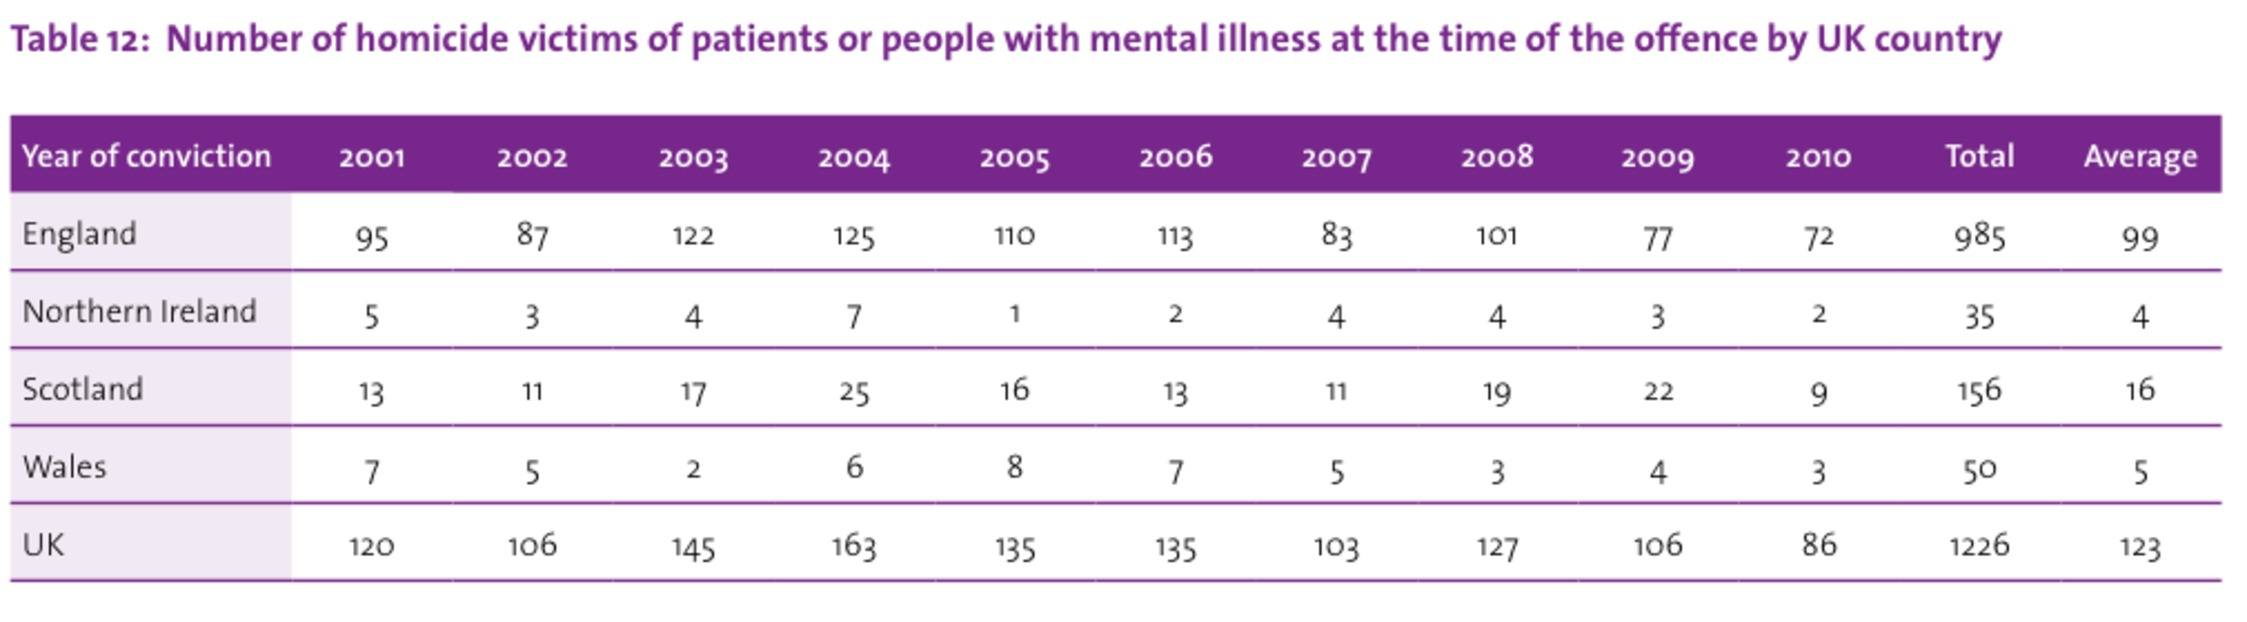 Number of homicide victims of patients or people with mental illness at the time of the offence by UK country